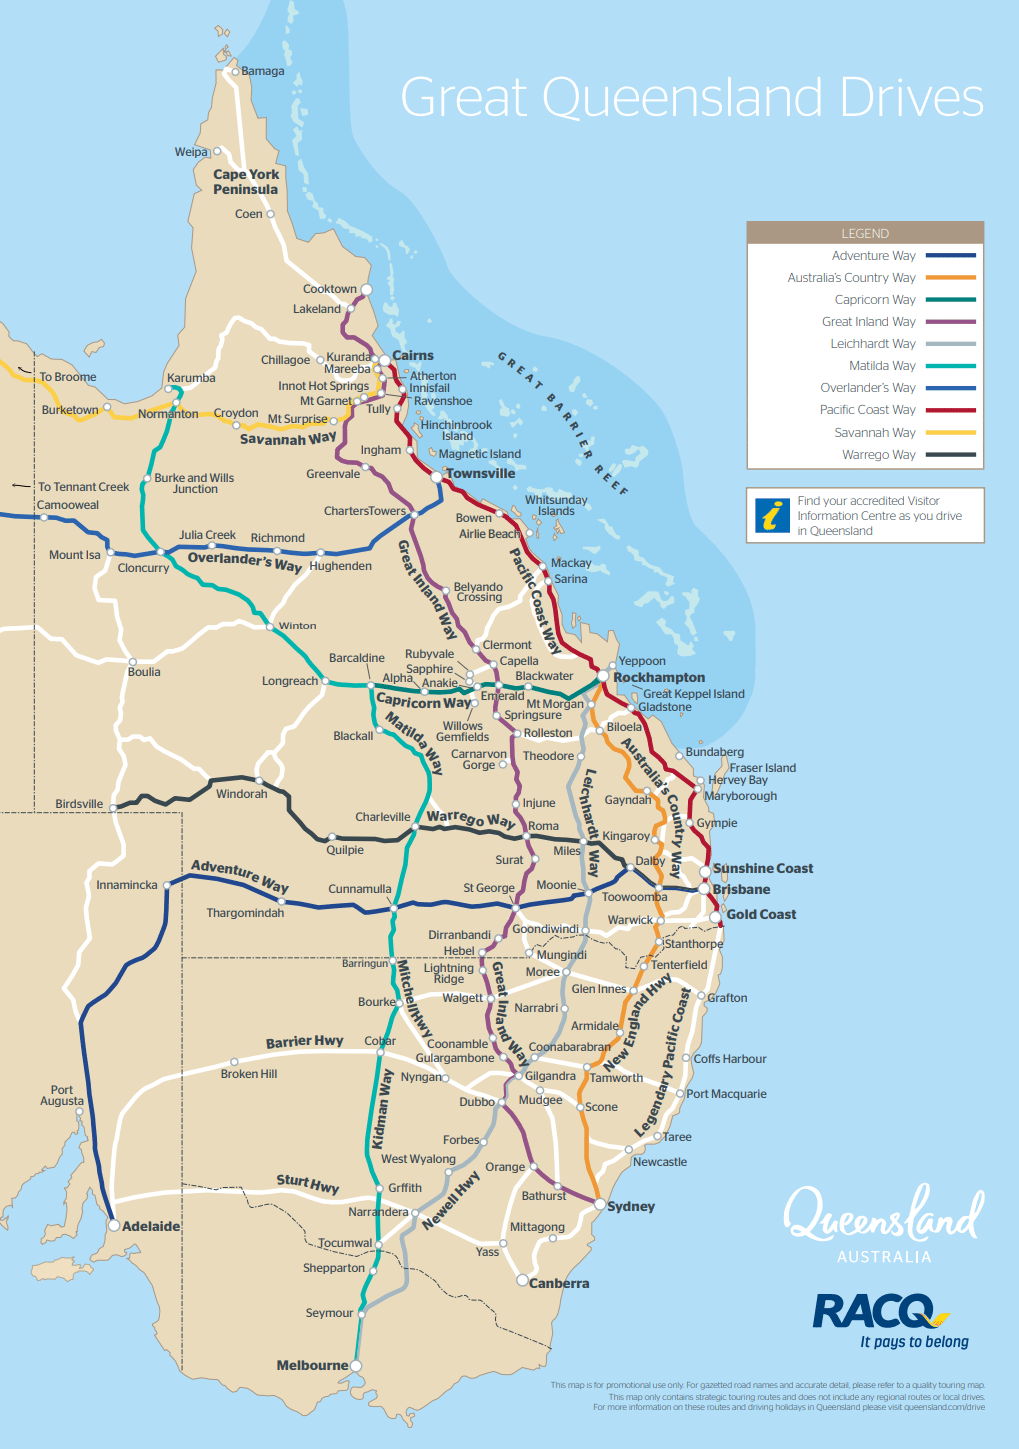 Where Is The Outback In Australia On A Map.Queensland Drive Maps Outback Queensland